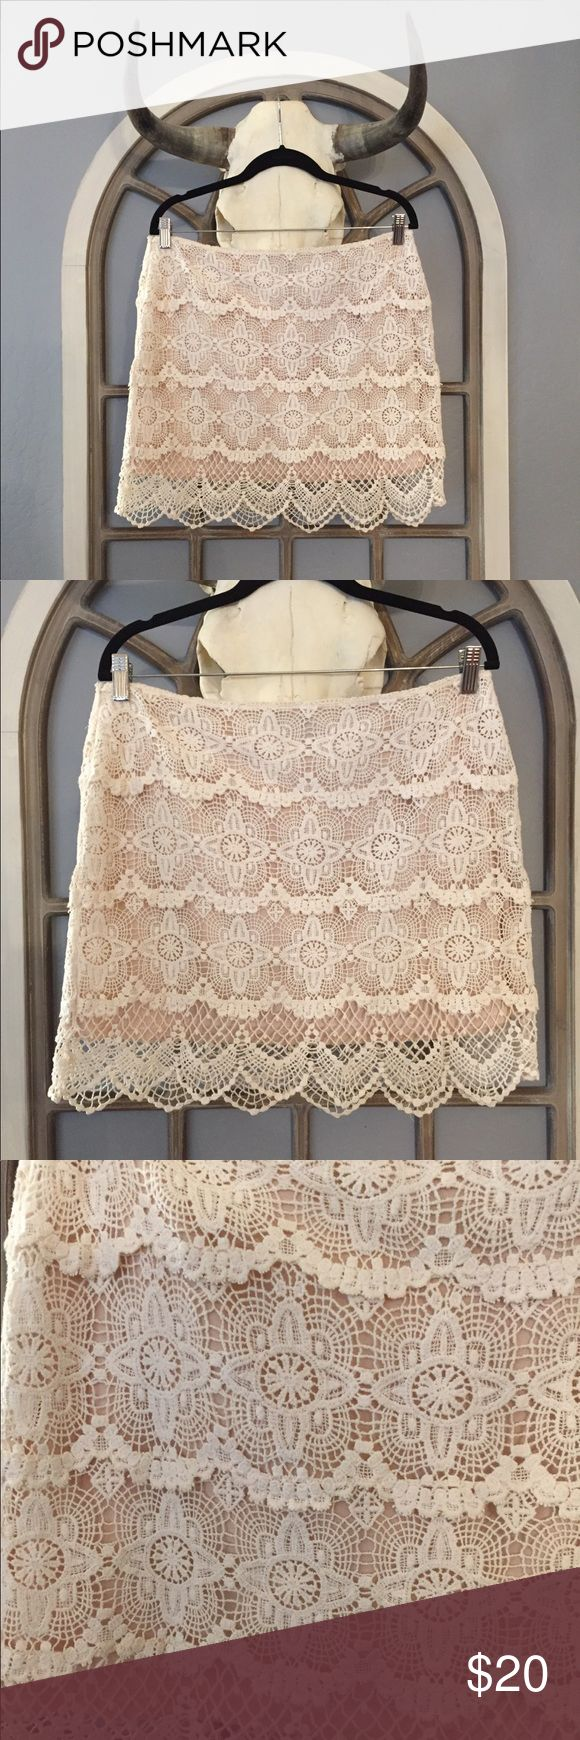 Cream Lace Skirt Beautiful lace skirt. Features a side zipper and is a size large. Laying flat it measures approximately 17 inches at the waist and 18 inches from top to bottom of lace. Jennifer Lopez Skirts